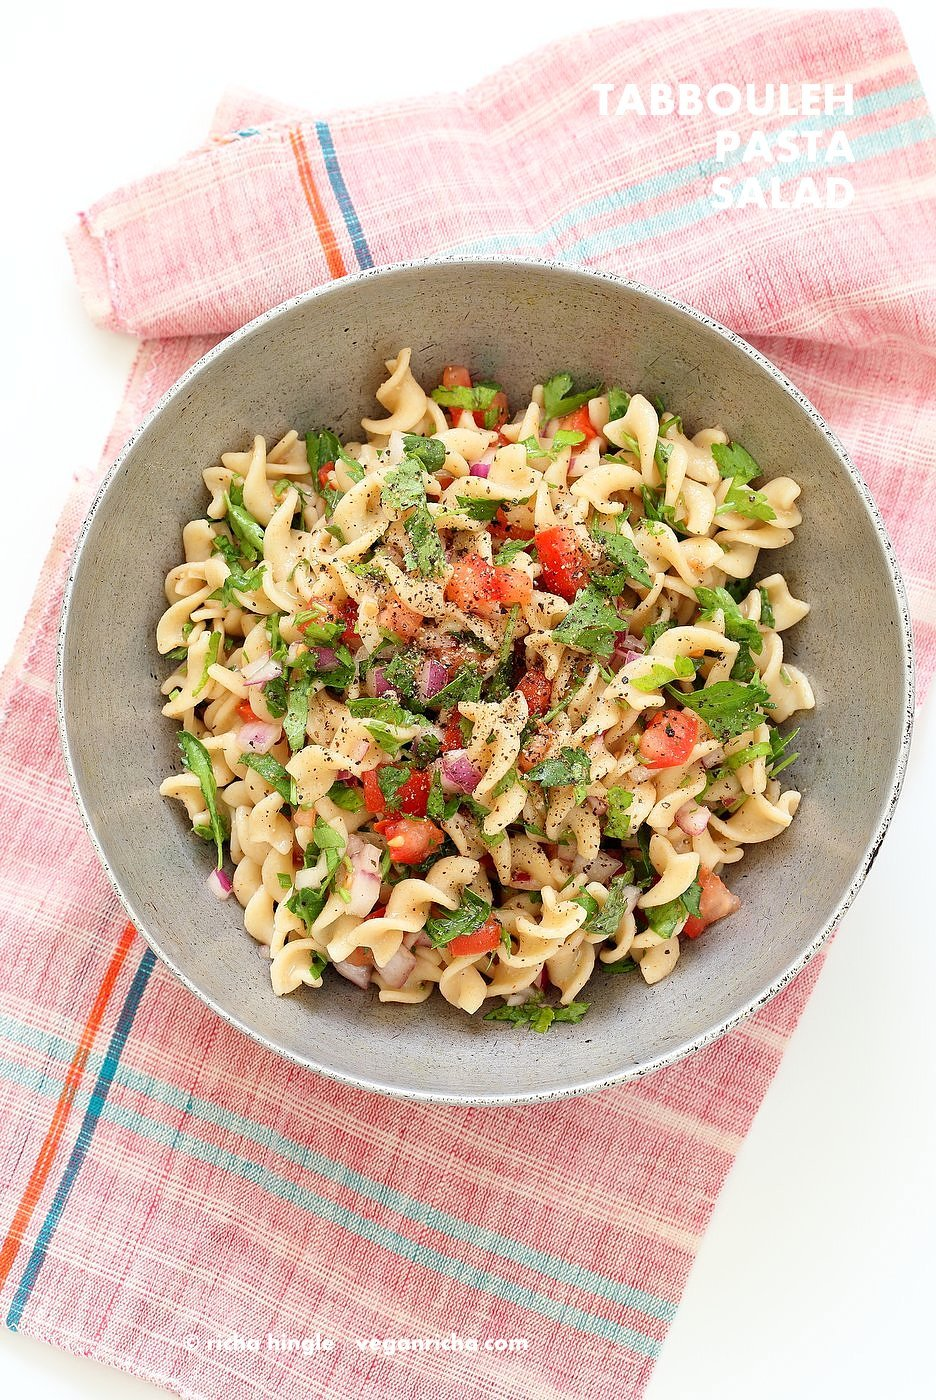 Tabbouleh Pasta Salad. Parsley, tomatoes, fusilli pasta dressed with olive oil, salt, pepper and lemon. Fresh Summer Salad. #Vegan #Soyfree Recipe. Can be made #glutenfree with gf pasta. | VeganRicha.com